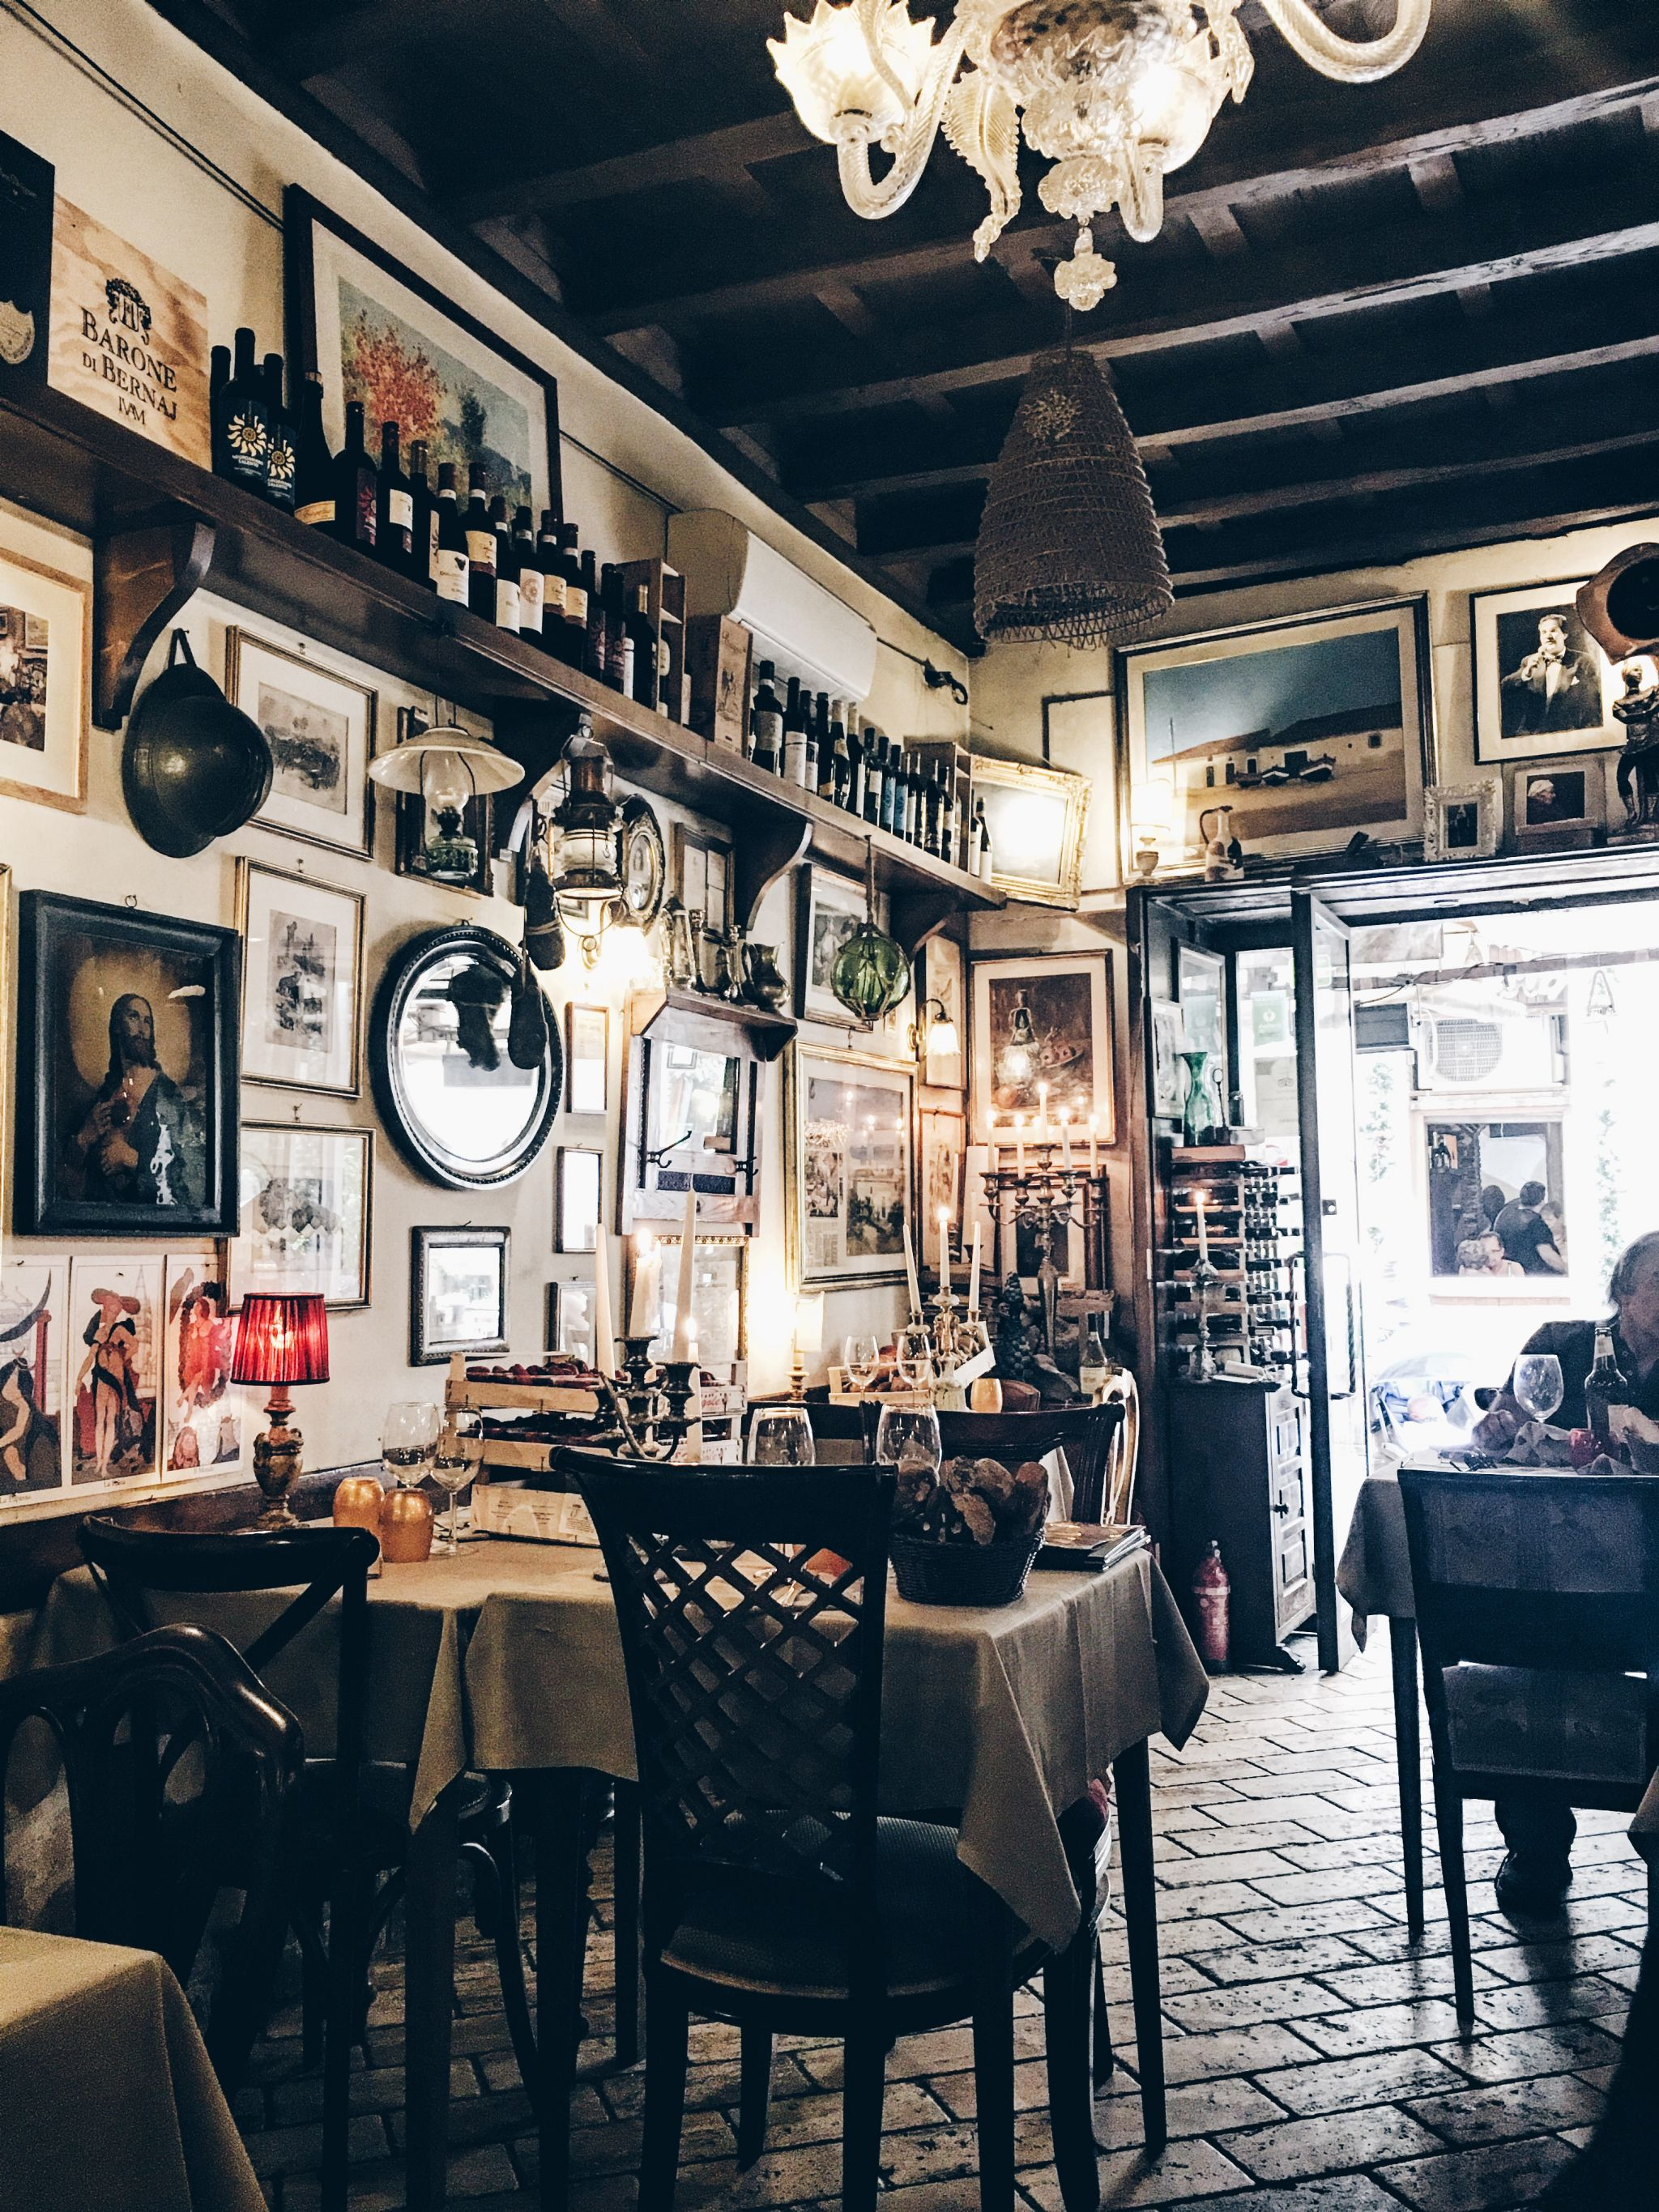 When in Rome: A Food Guide